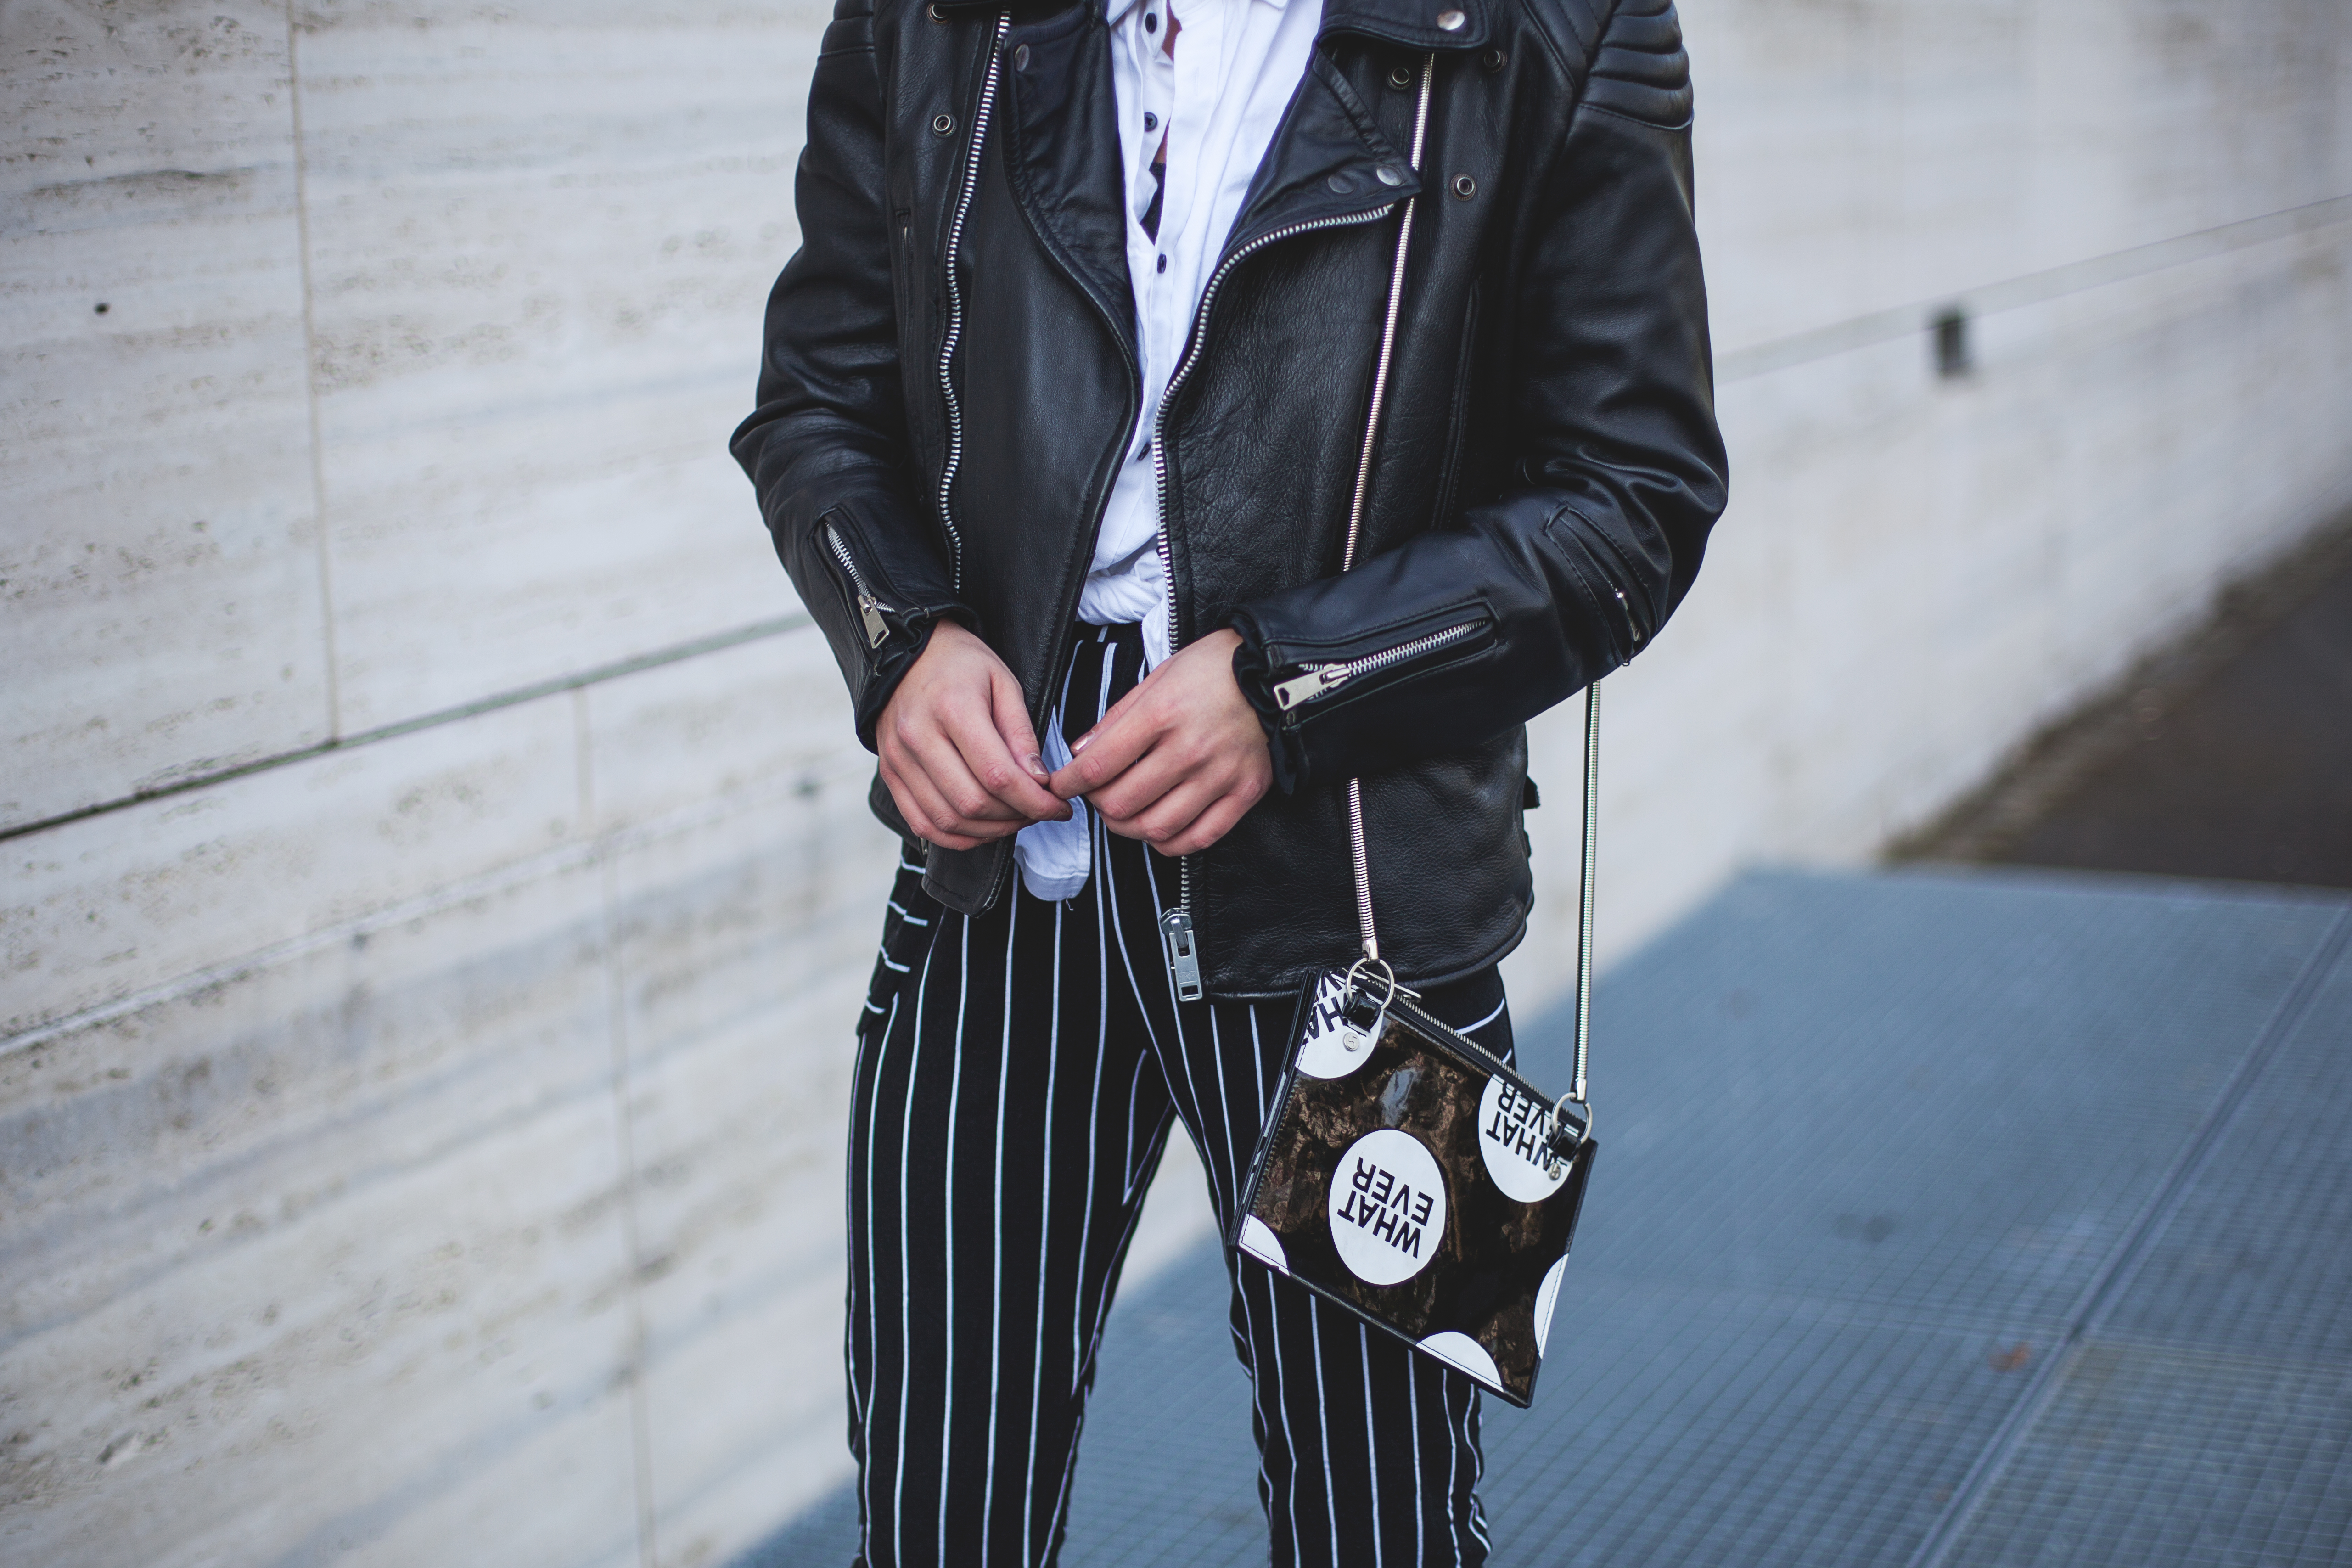 outfit fashionblogger modeblogger mode blog frankfurt berlin thecurledgirl the curled girl deliah alexandra leather jacket vintage oversize edgy ootd streetstyle